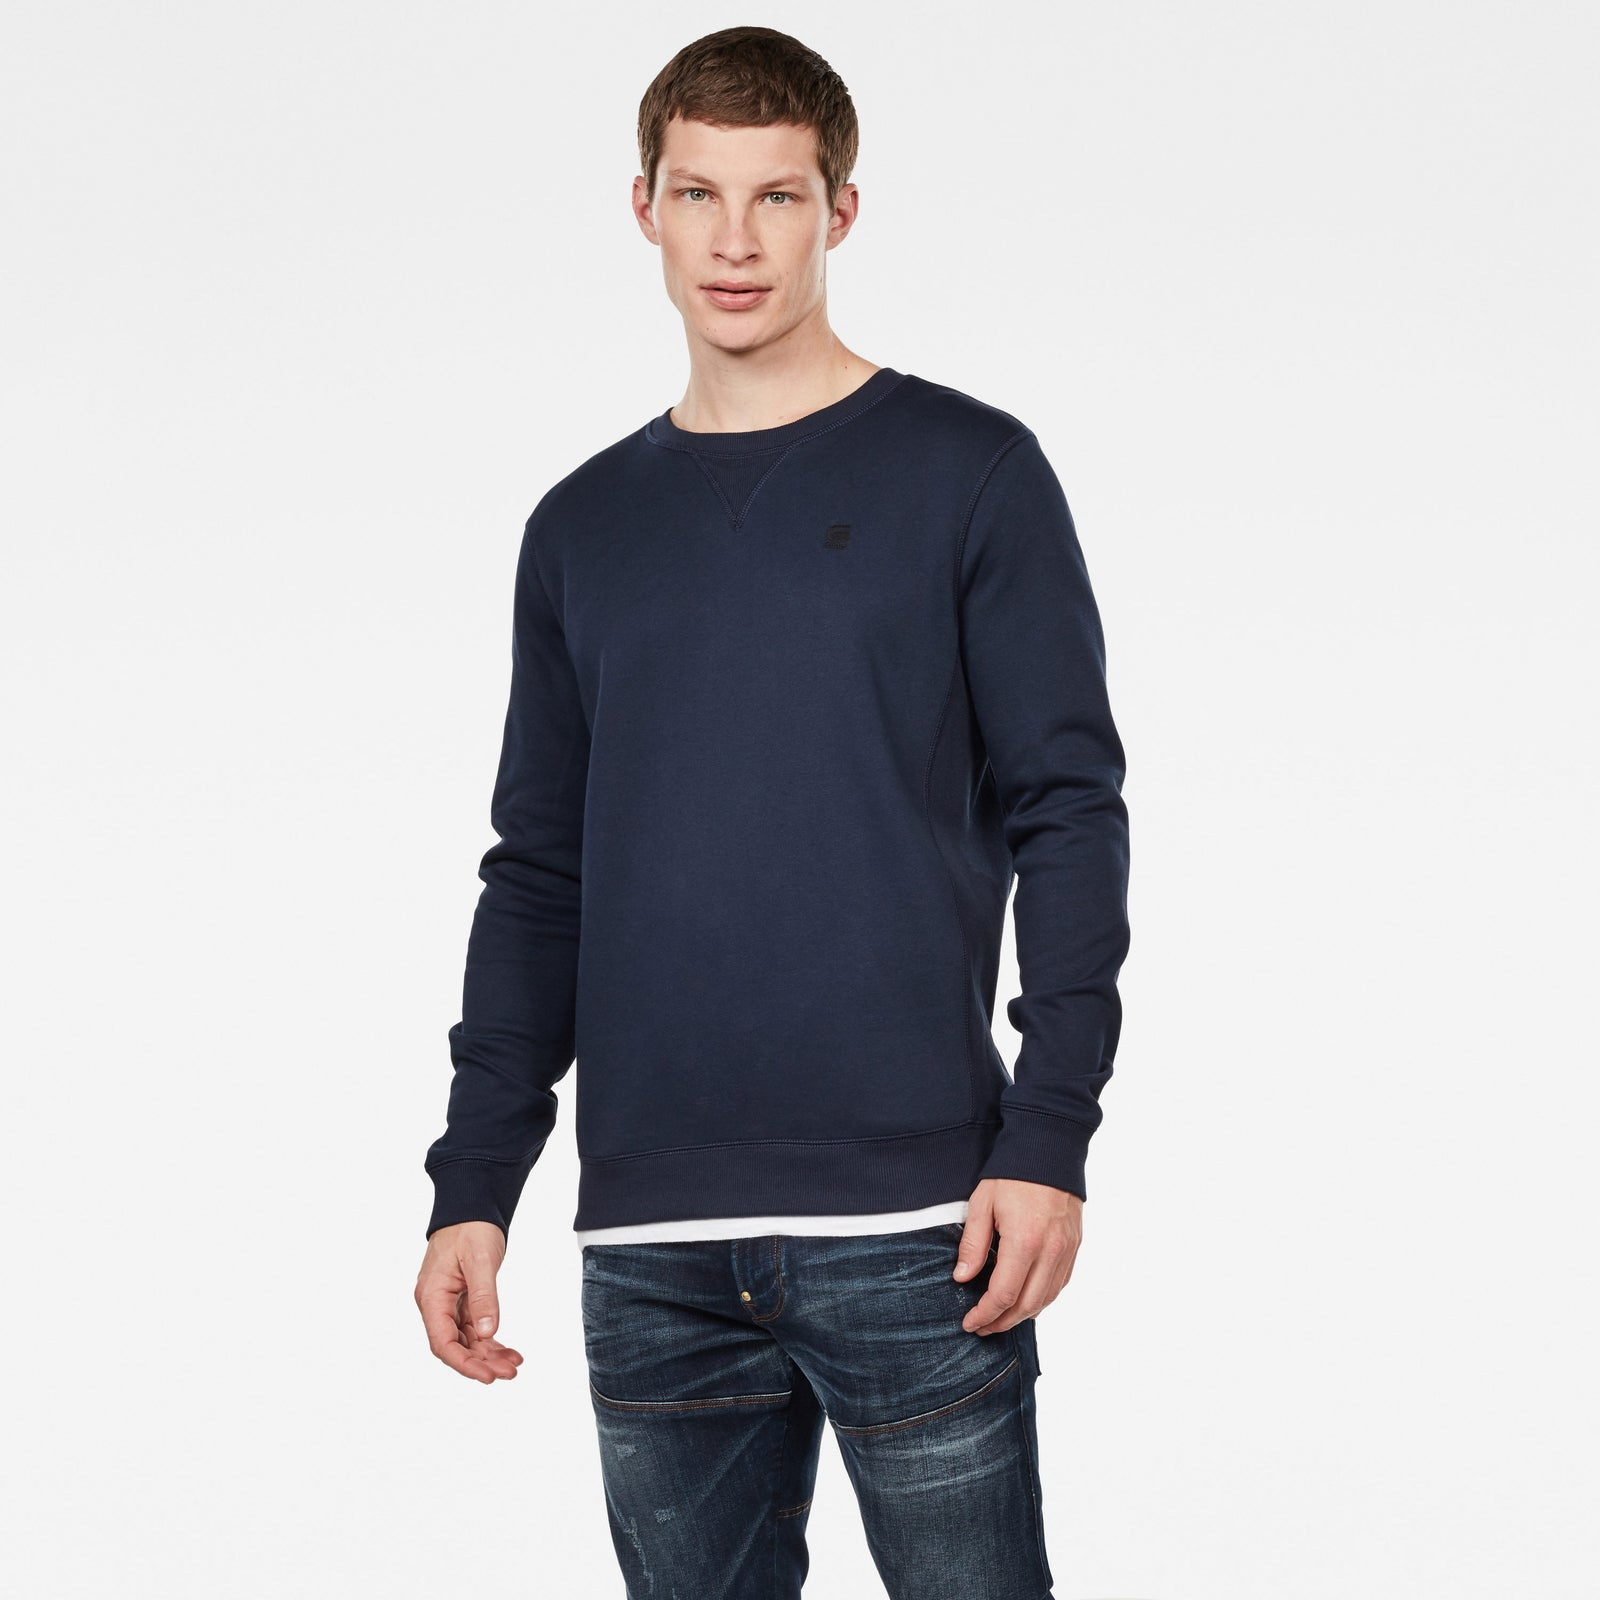 G-STAR RAW Premium Core Pull-Over Homme